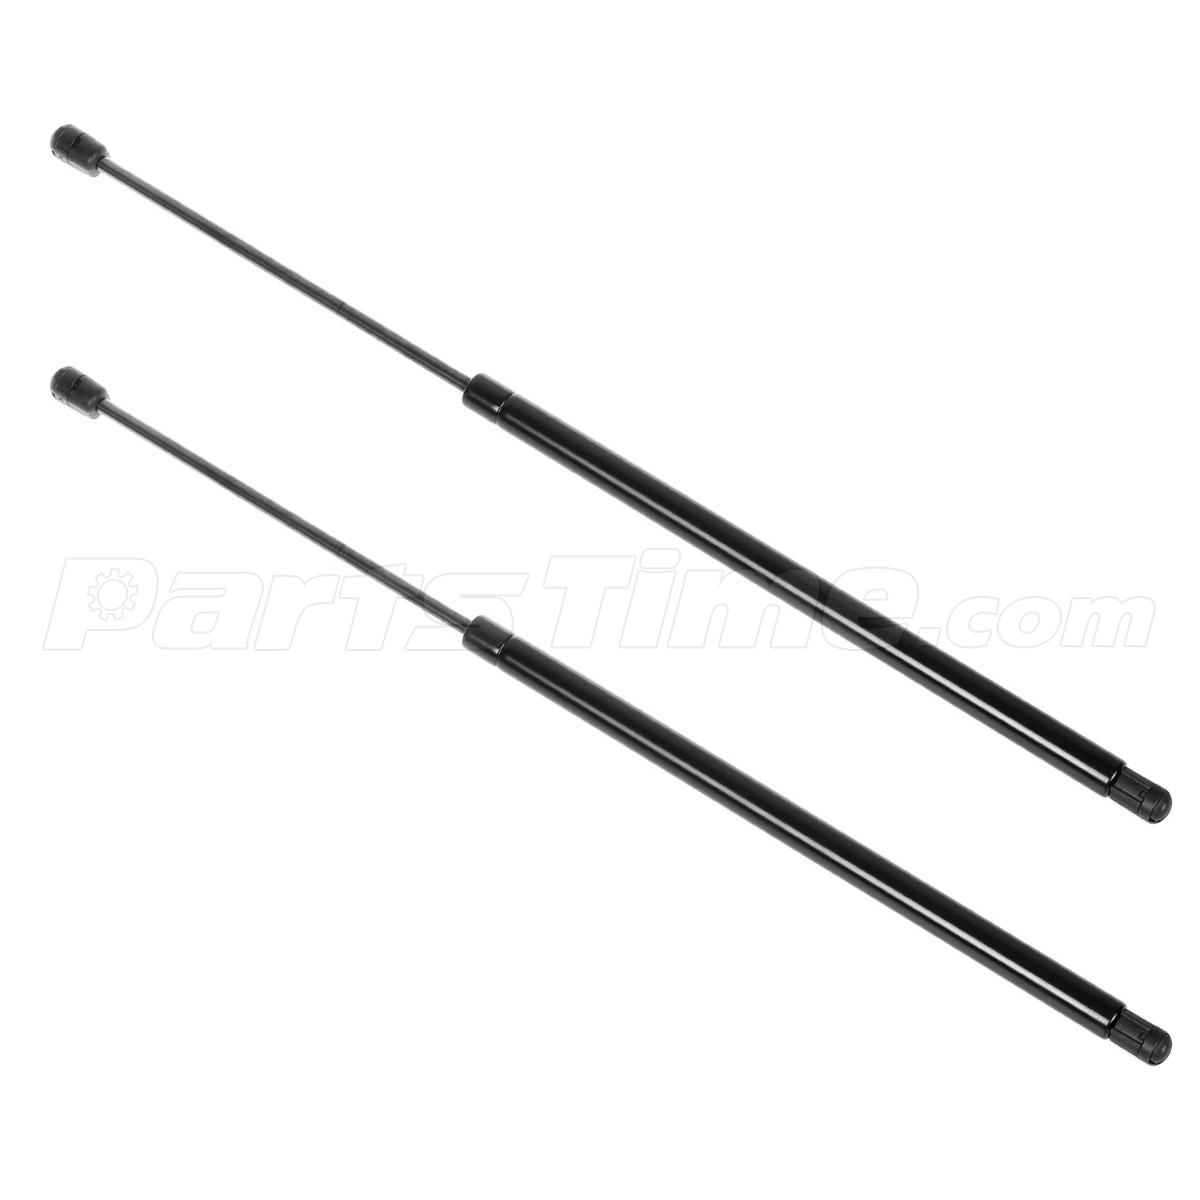 2 Rear Liftgate Hatch Gas Charged Lift Support For Chevrolet Hhr